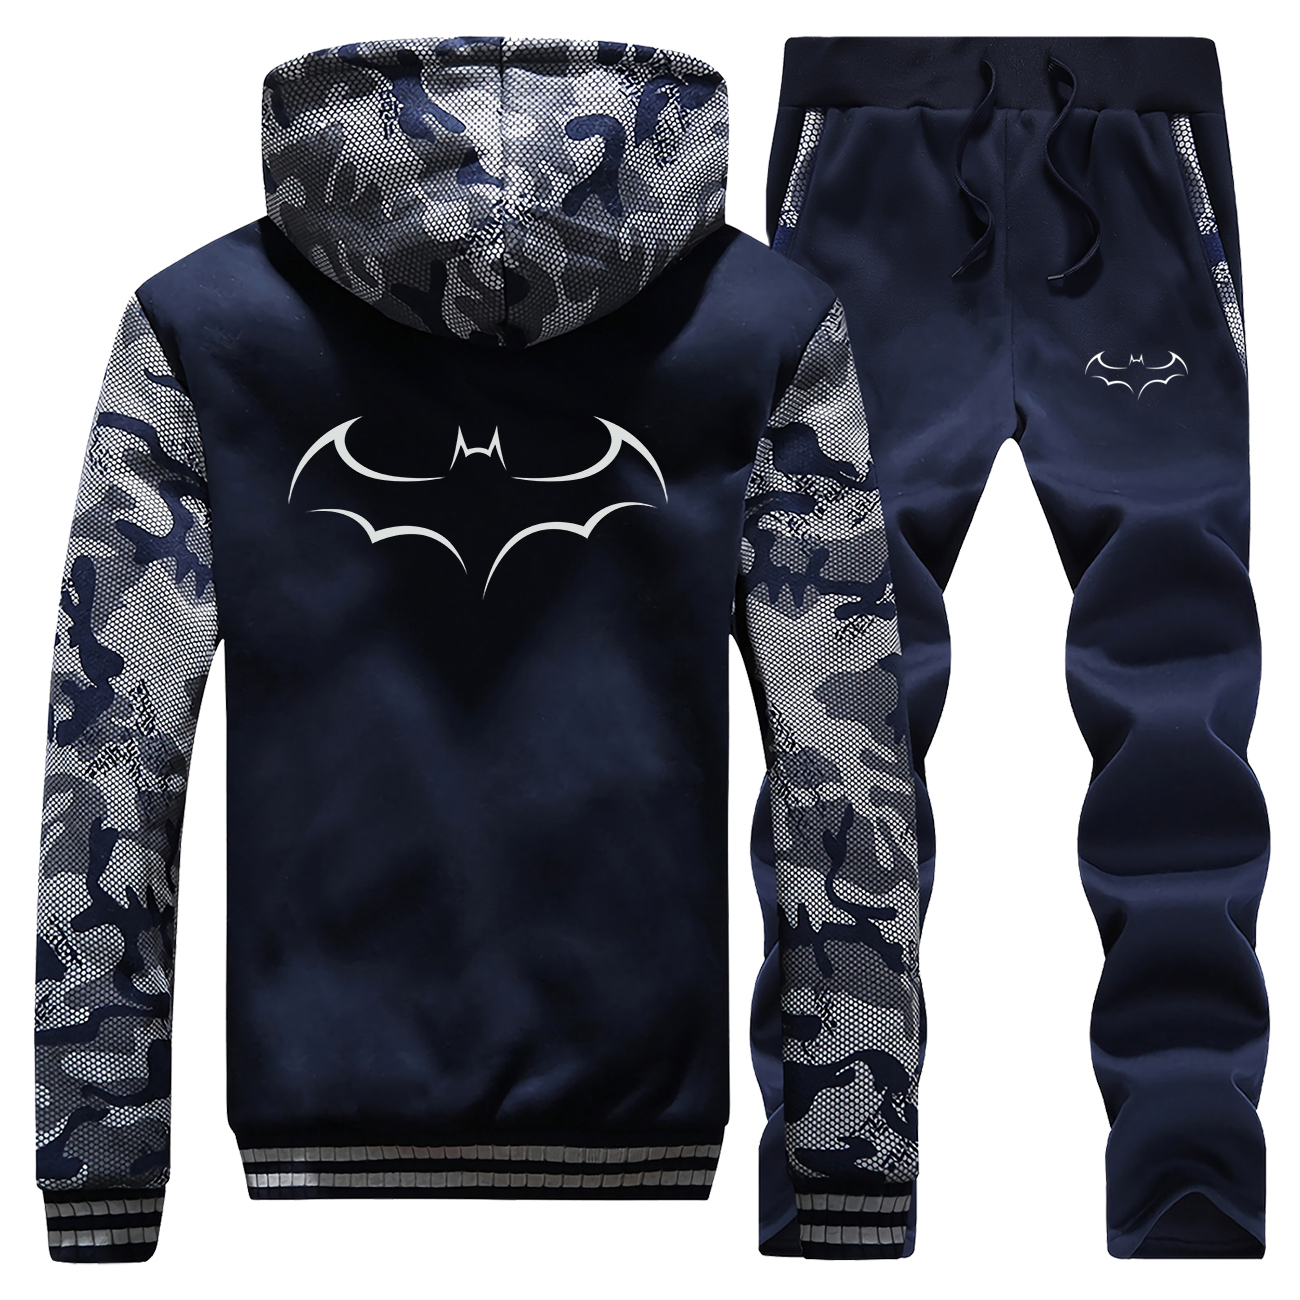 DC Batman Men Warm Sets Fashion Superhero Hoodies Sweatshirt +Sweatpants Mens 2 Pieces Set Tracksuit Thick Hoodies Trousers Suit